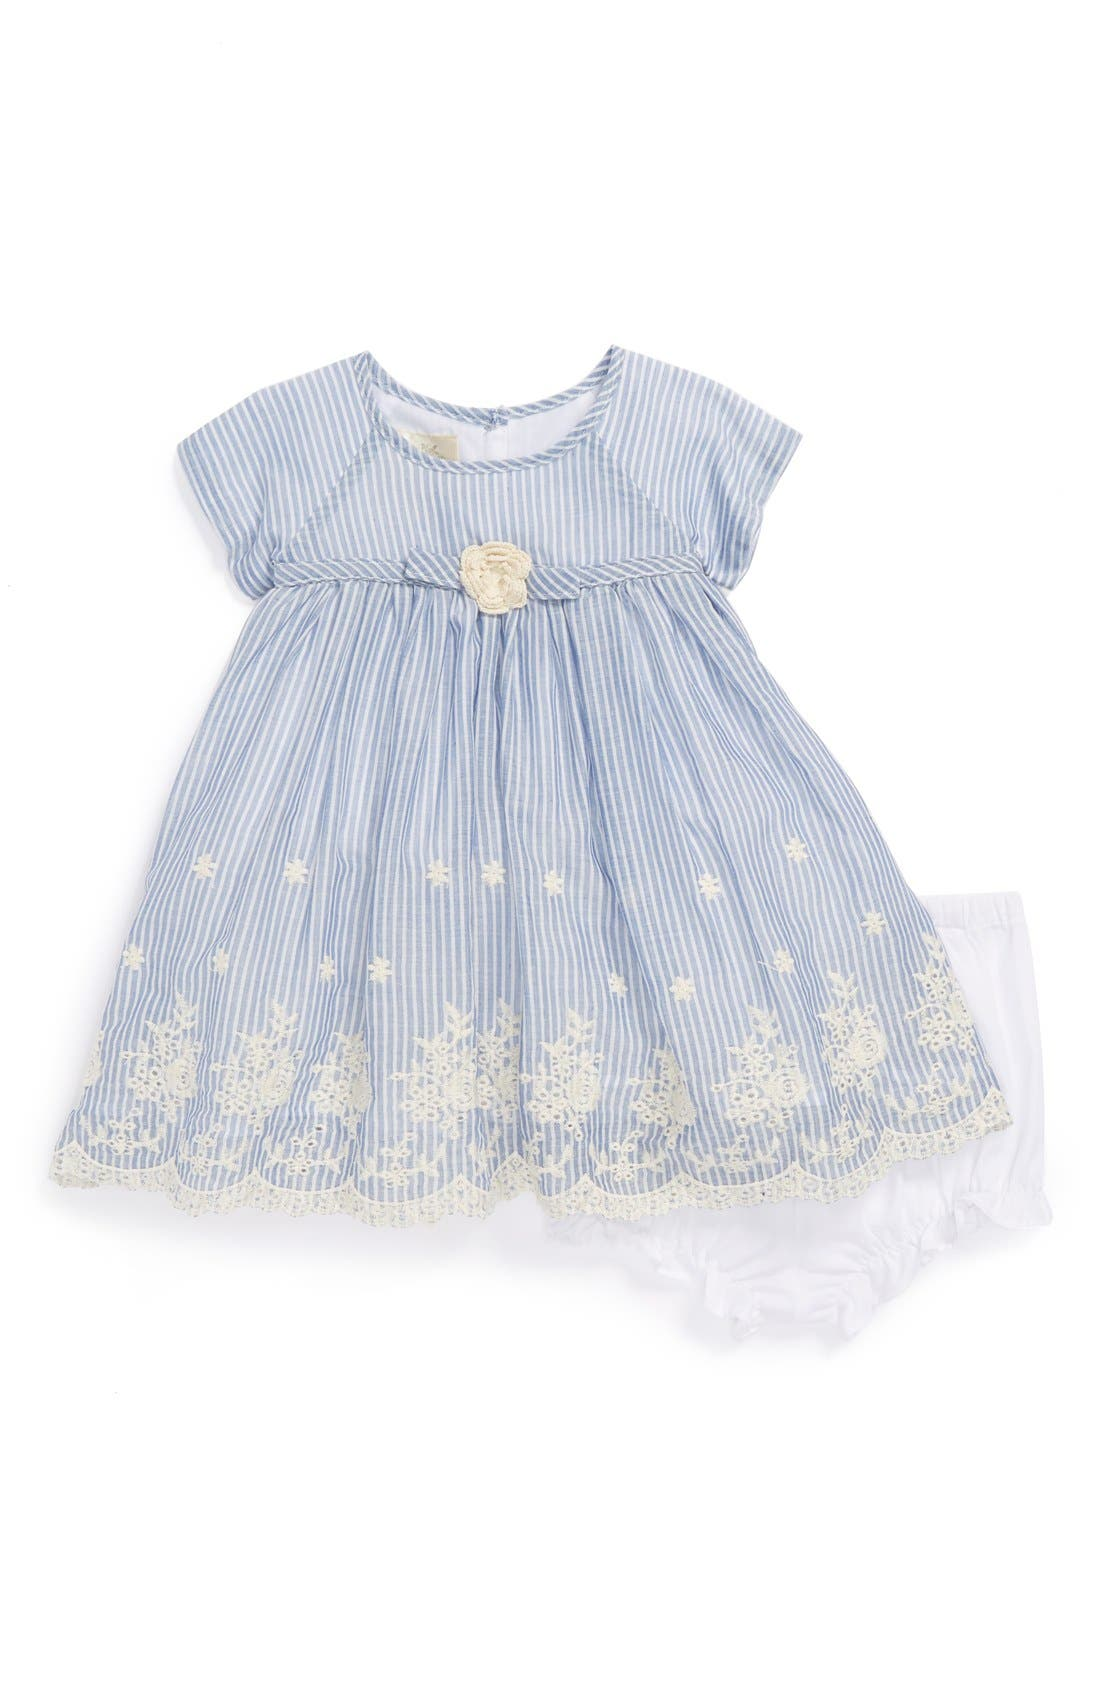 Alternate Image 1 Selected - Pippa & Julie Chambray & Eyelet Dress & Bloomers (Baby Girls)